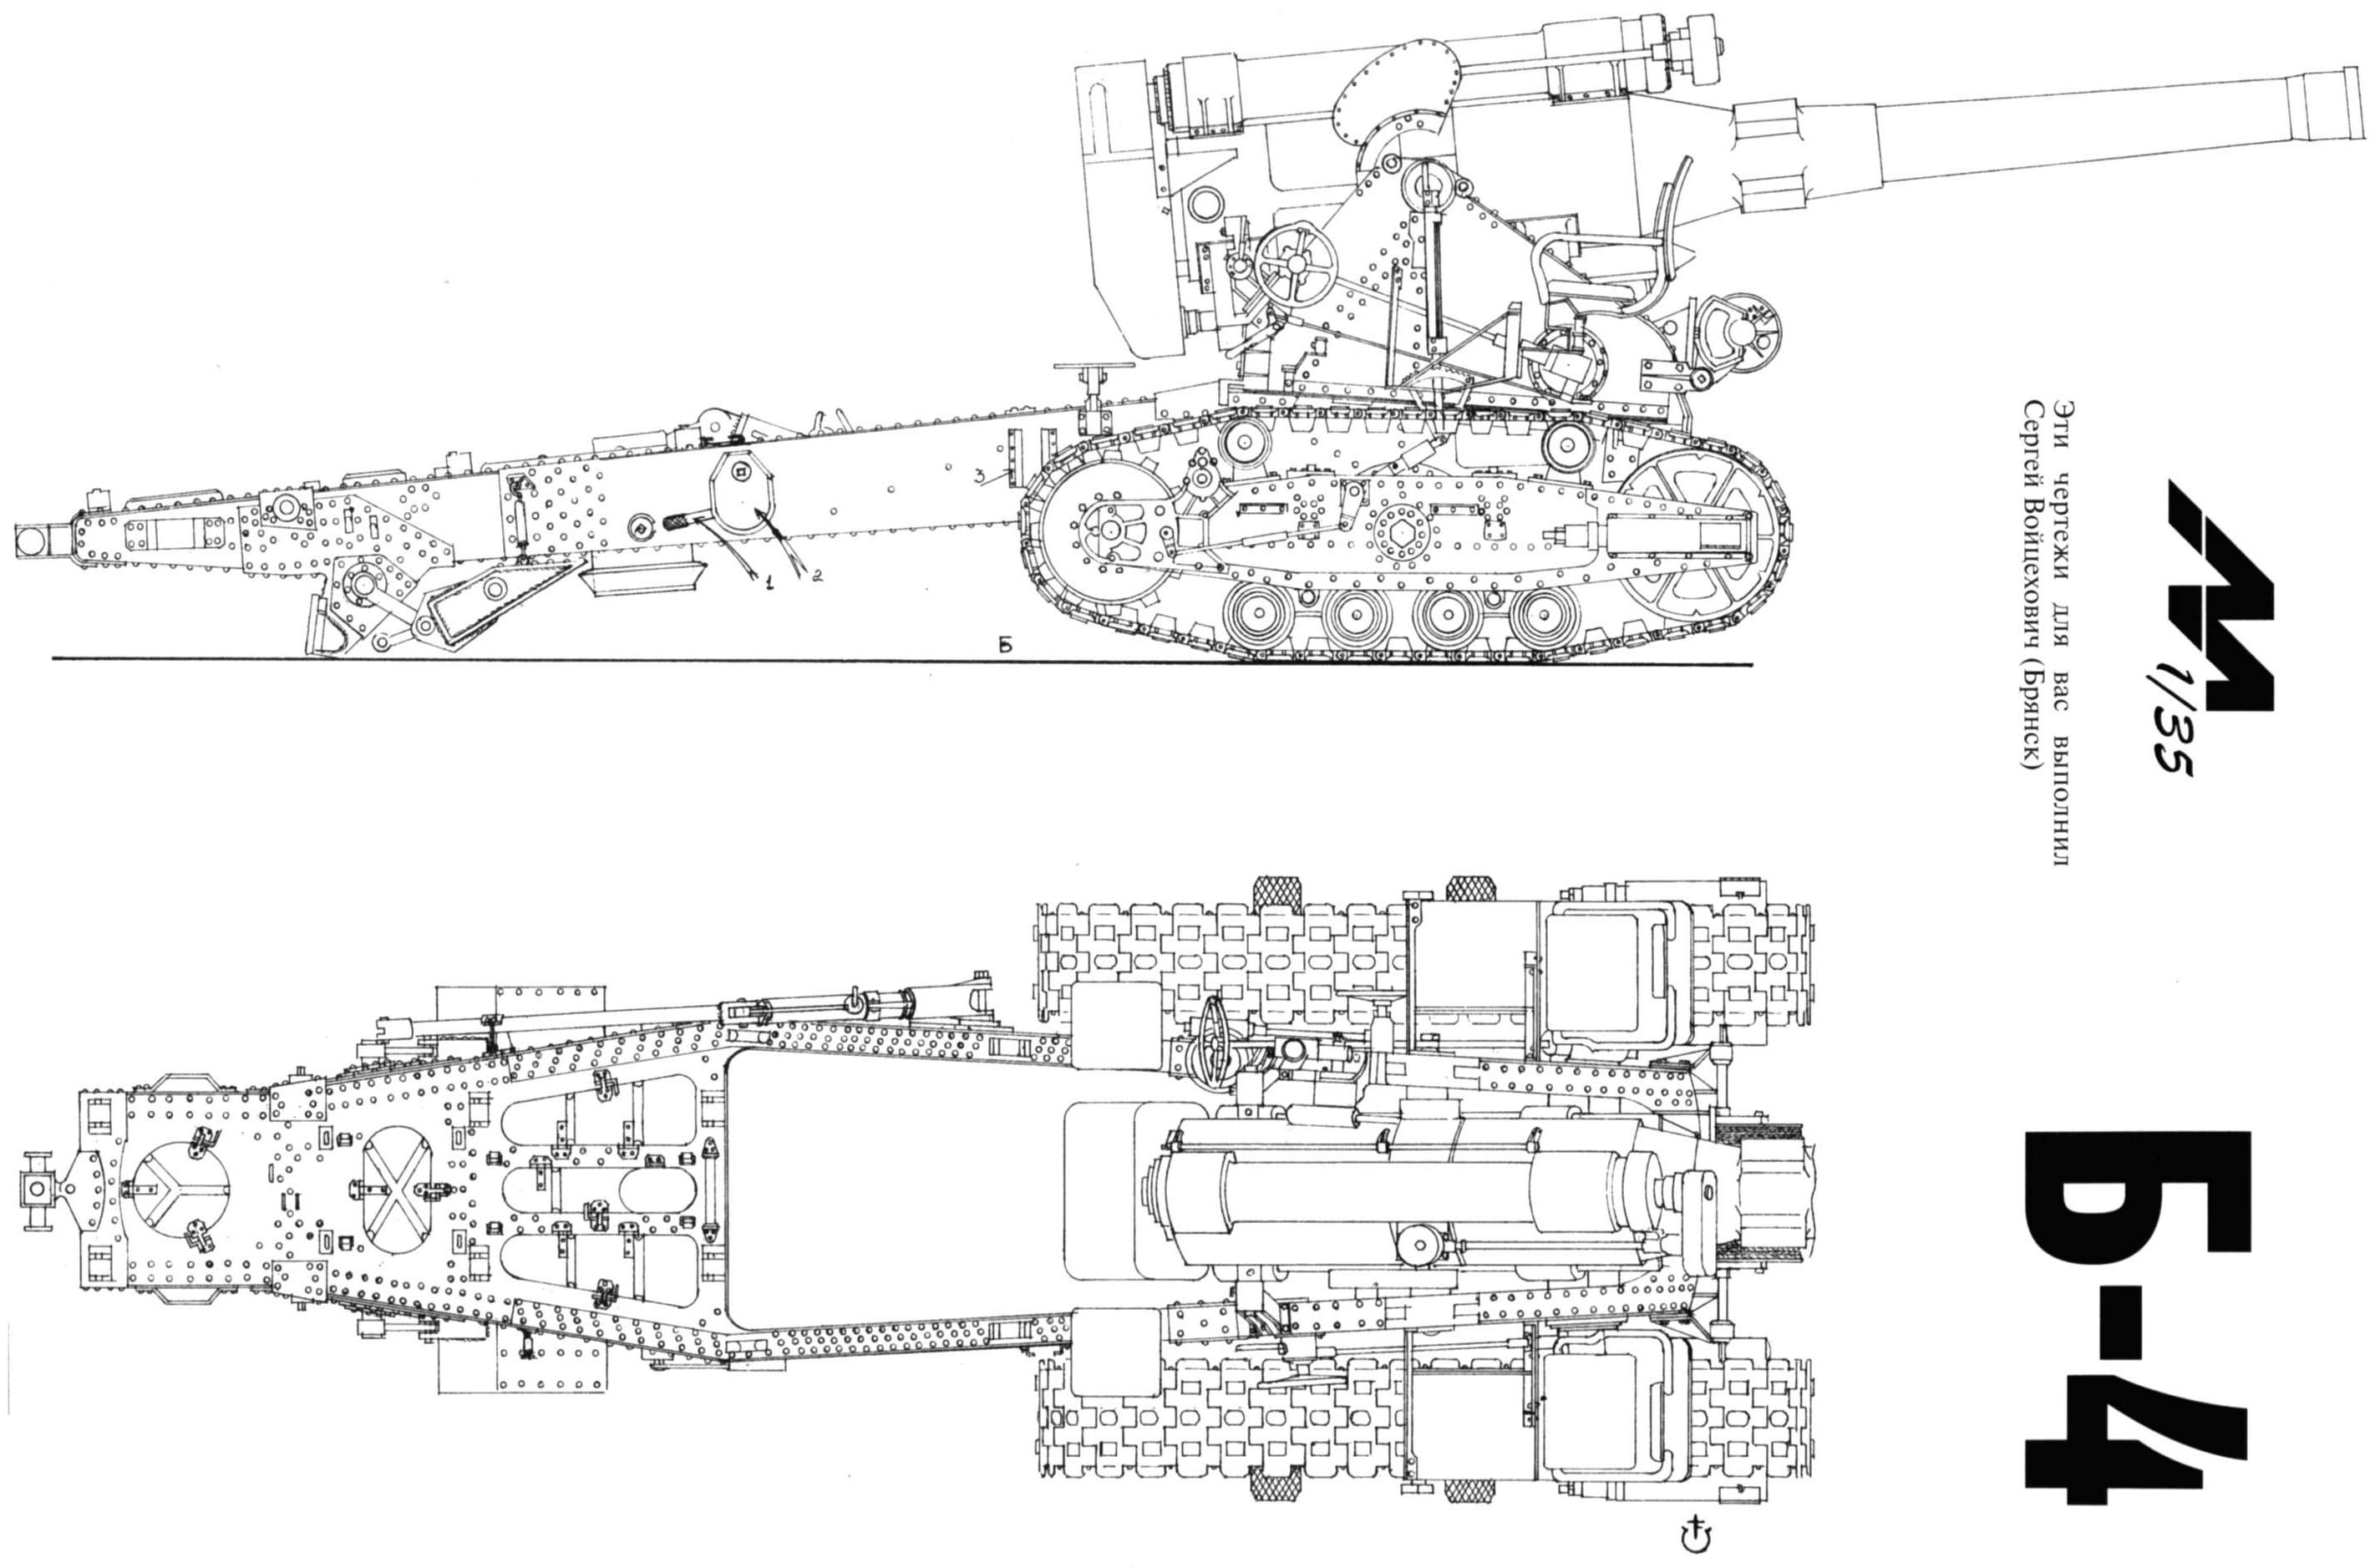 203 mm howitzer M1931 (B-4) blueprint